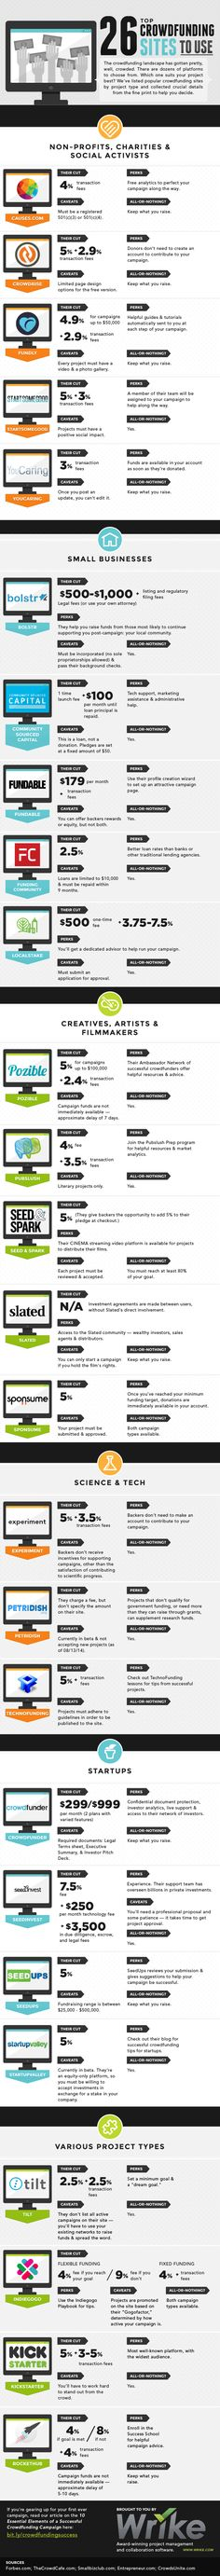 Definitive Guide to Crowdfunding Sites #Infographic #crowdsourcing #fundraising #infografía